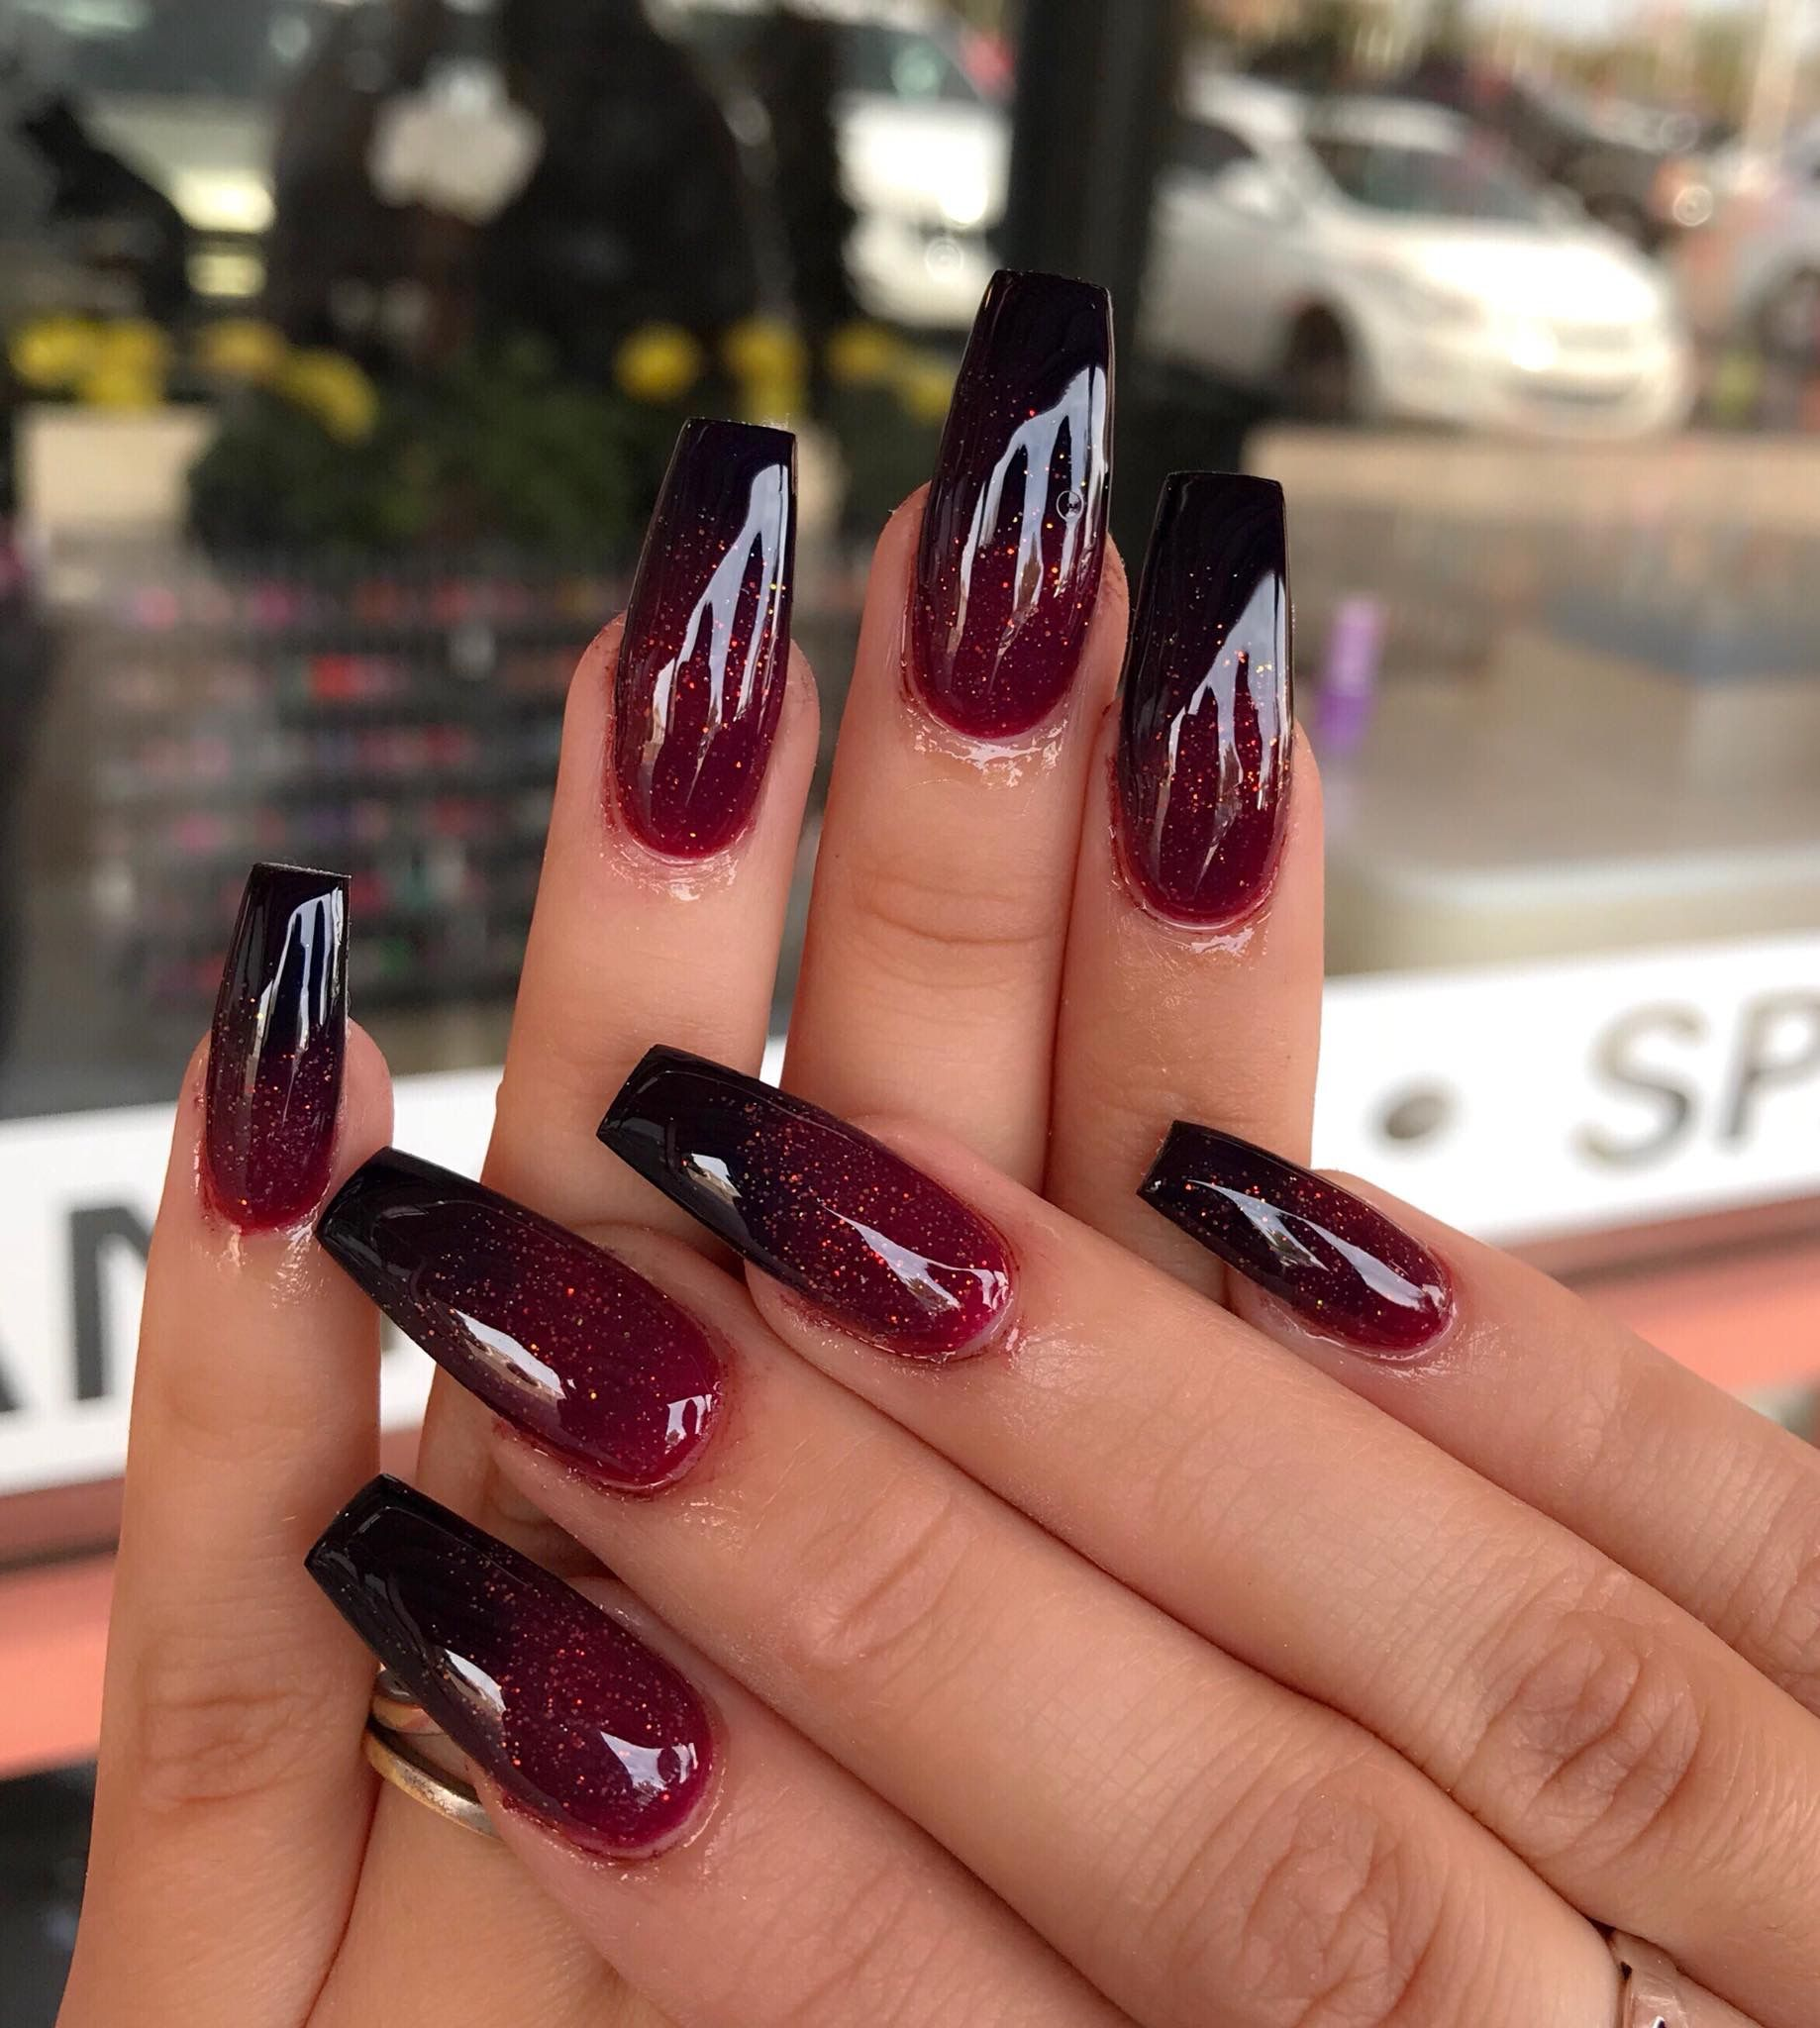 Red And Black Ombre Coffin Nails Black Ombre Nails Red Ombre Nails Coffin Nails Ombre